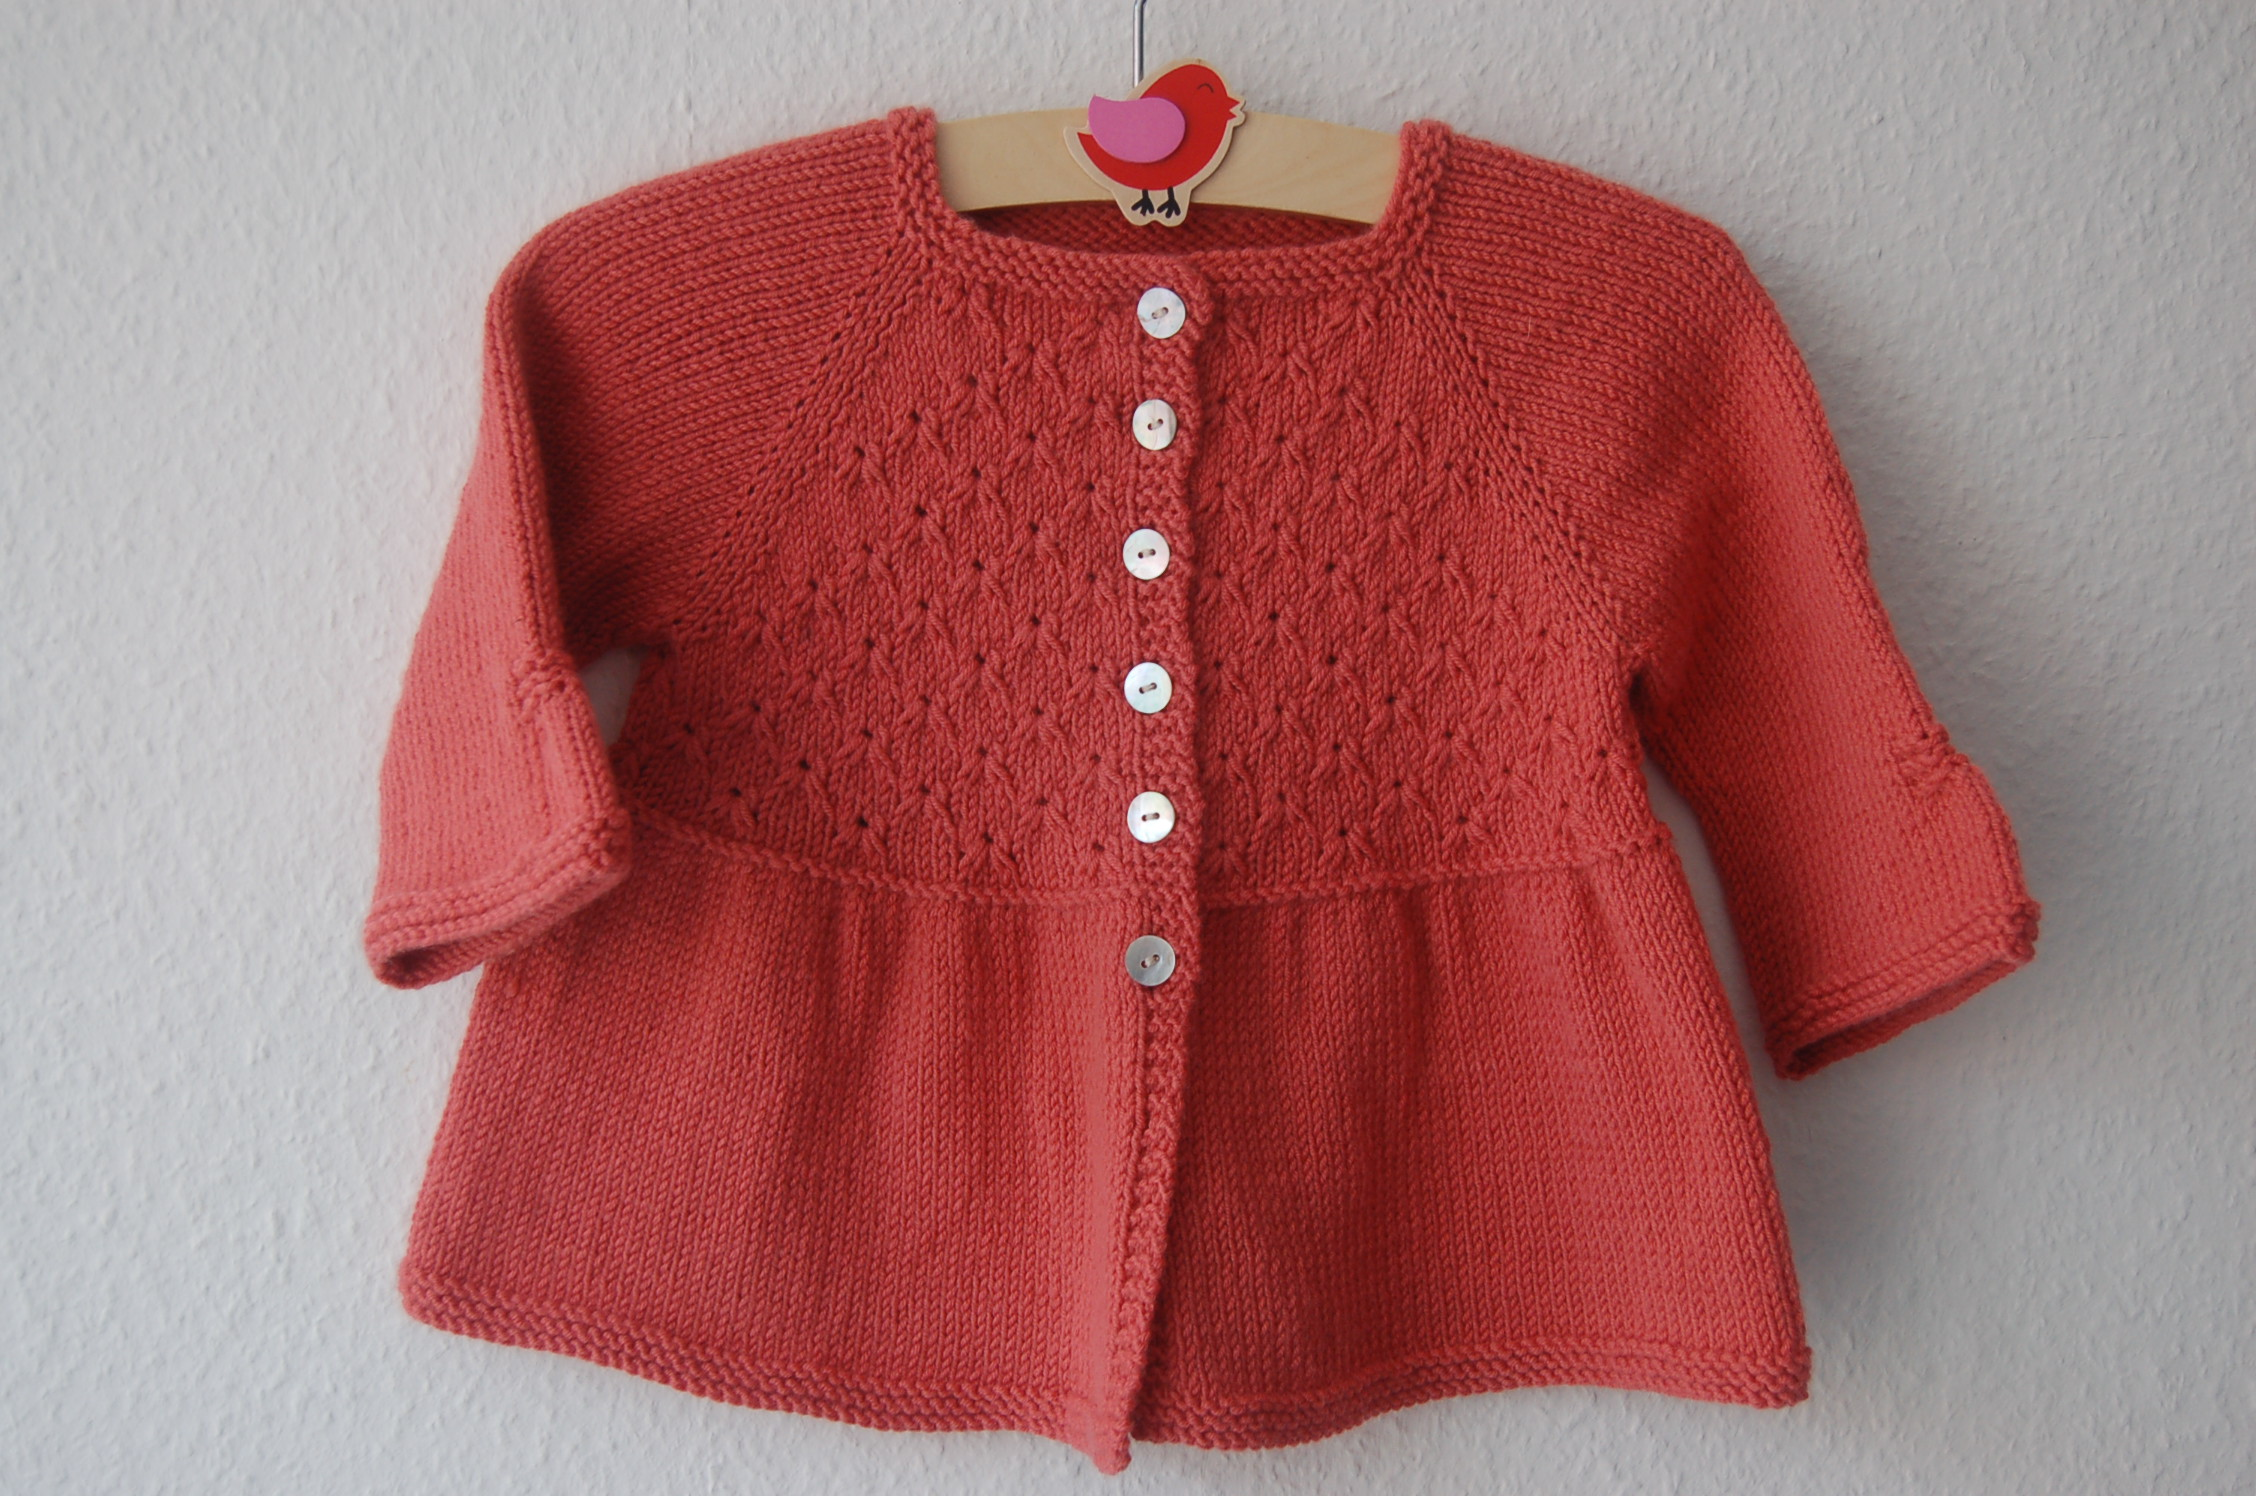 Alouette girl lace cardigan - knitting pattern